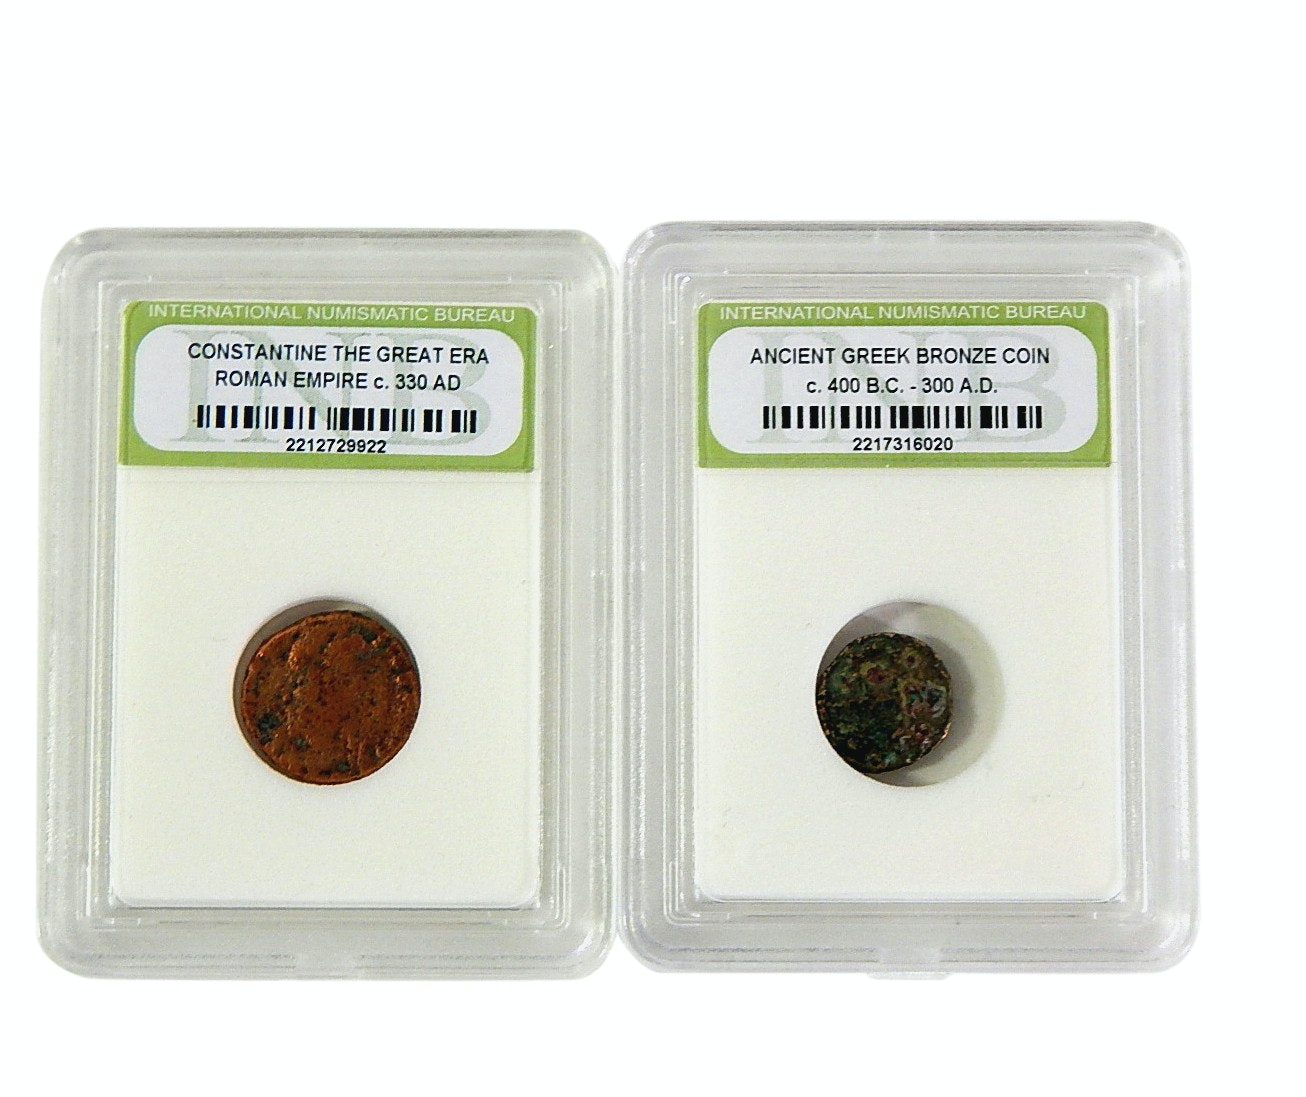 Ancient Greek and Constantine Empire Bronze Coin Specimens